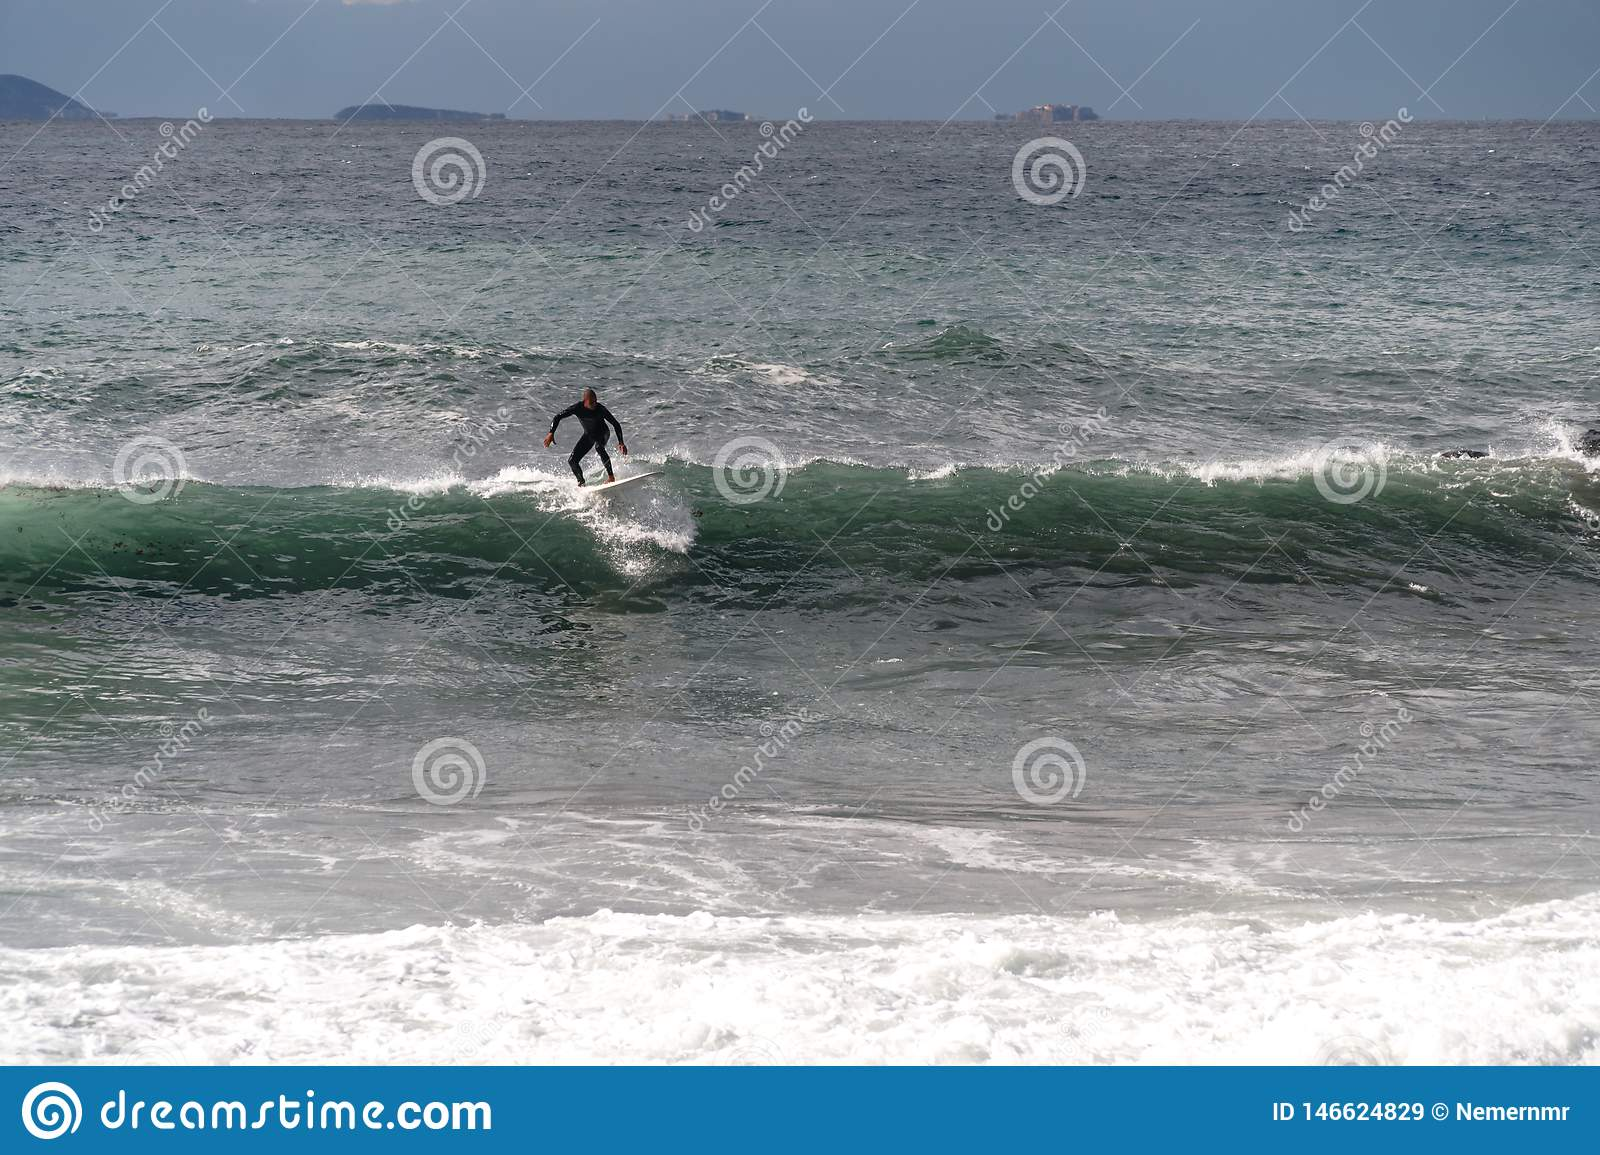 The surfer takes a wave, on a surfboard, slides along the wave, in the background of the mountain, Sorrento Italy